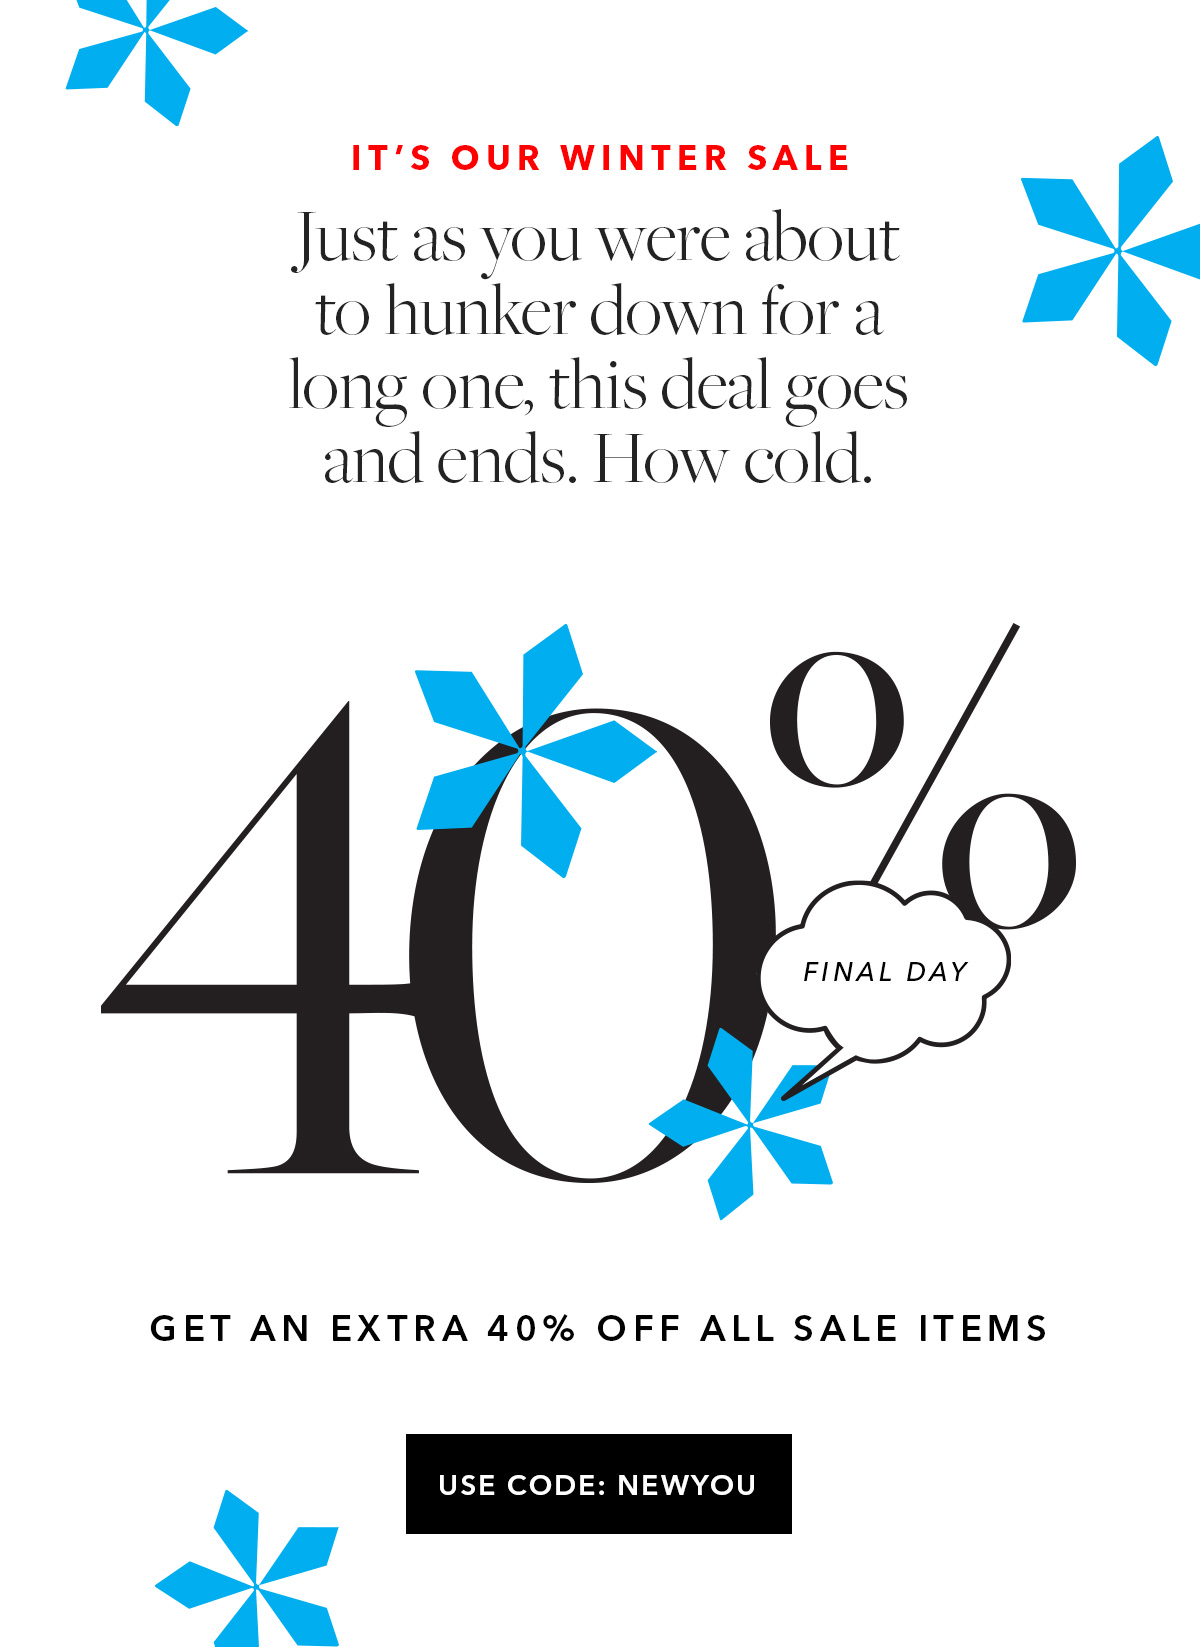 It's Our Winter Sale // Final Day: Extra 40% Off All Sale Items // Just as you were about to hunker down for a long one, this deal goes and ends. How cold. USE CODE NEWYOU →